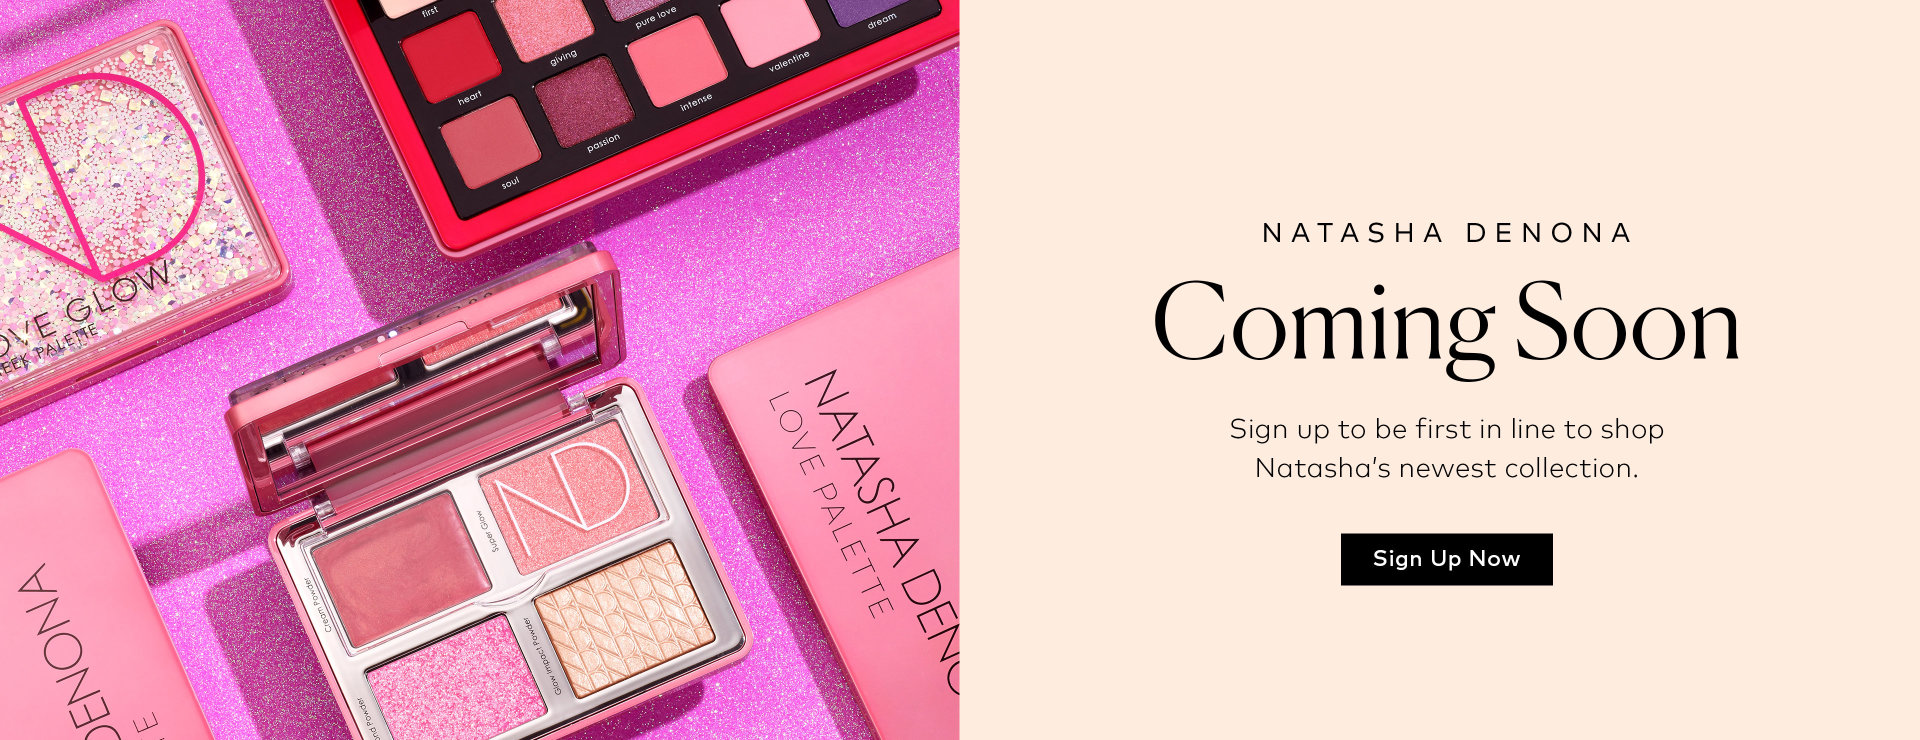 Natasha Denona's Love Story Collection is arriving soon! – Sign up for notifications